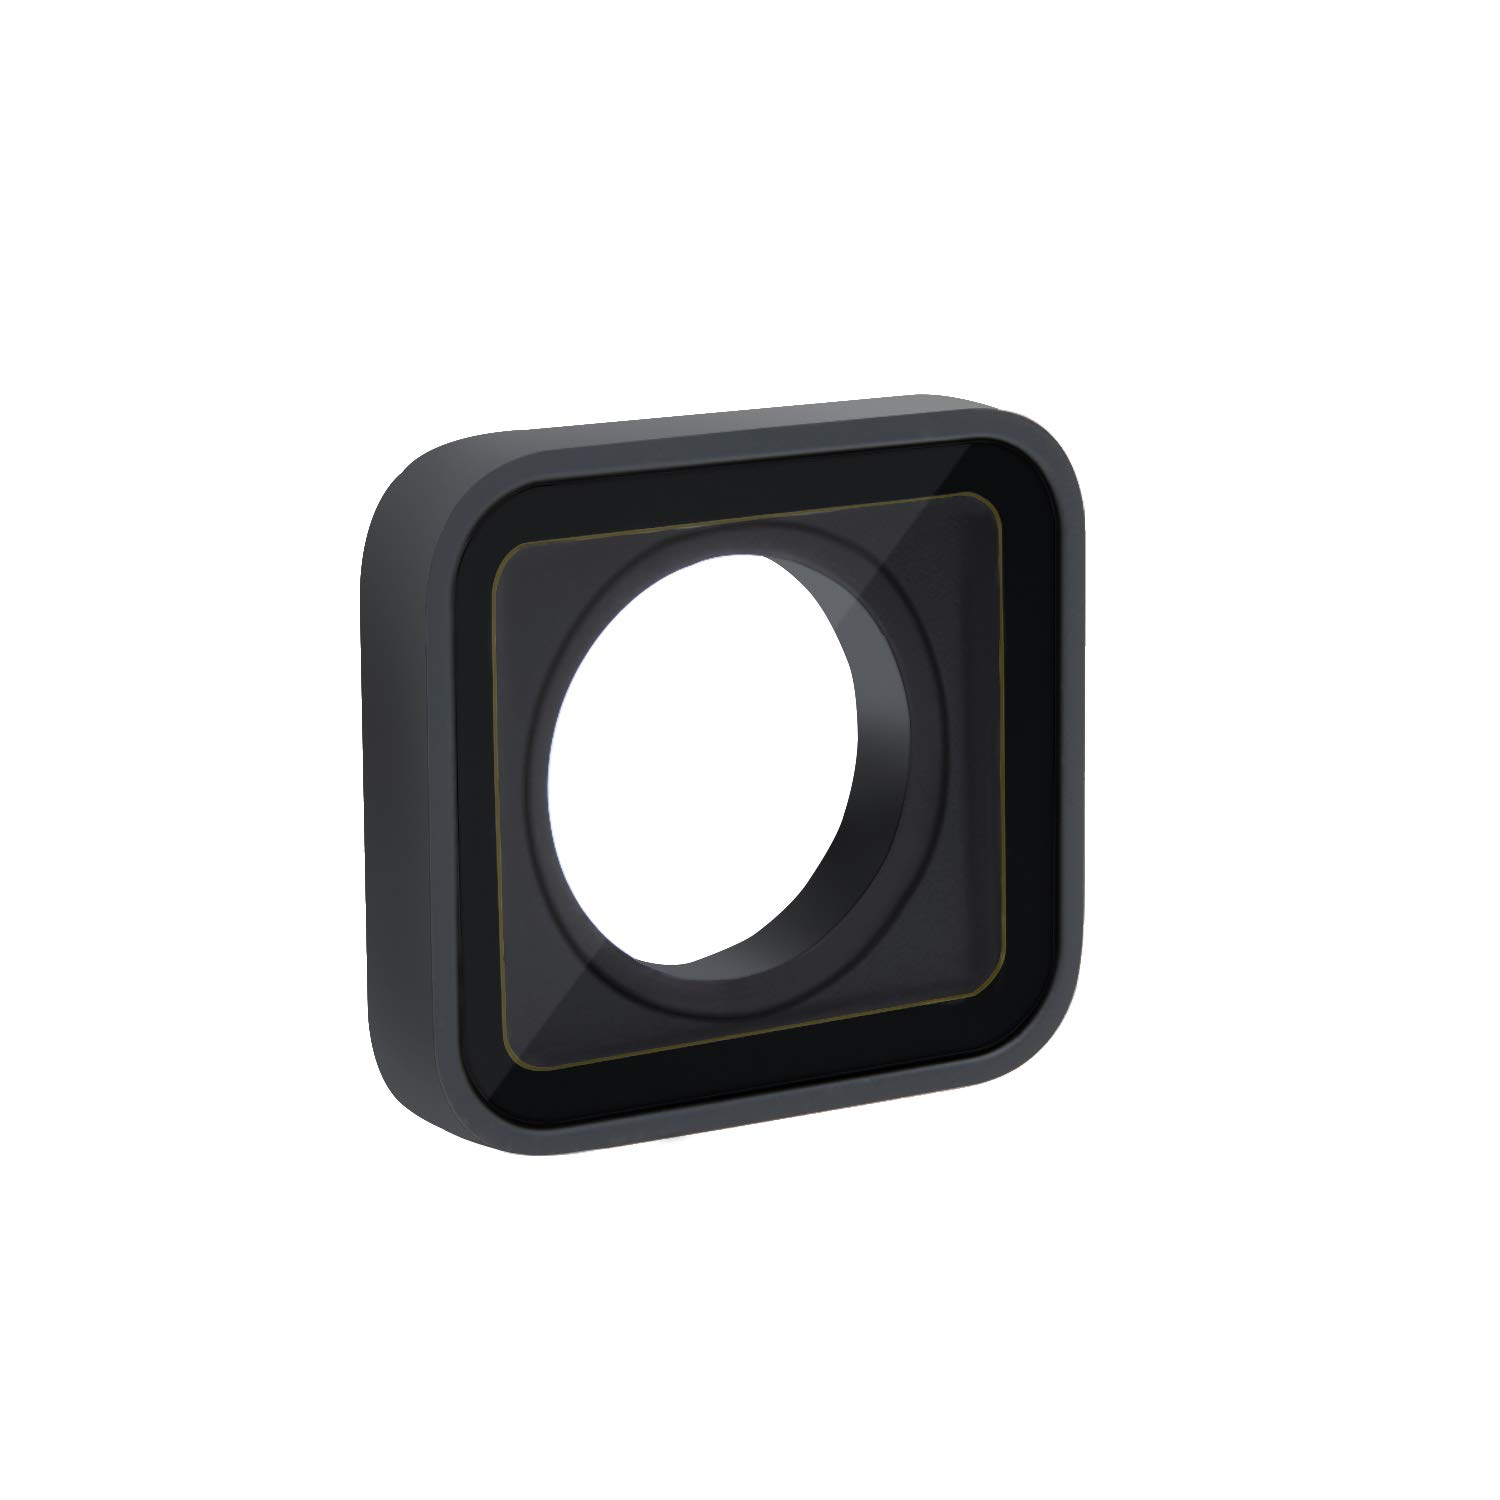 Lens Replacement for GoPro Hero 7 Black Protective Camera Lens Cover Glass Replacement Part